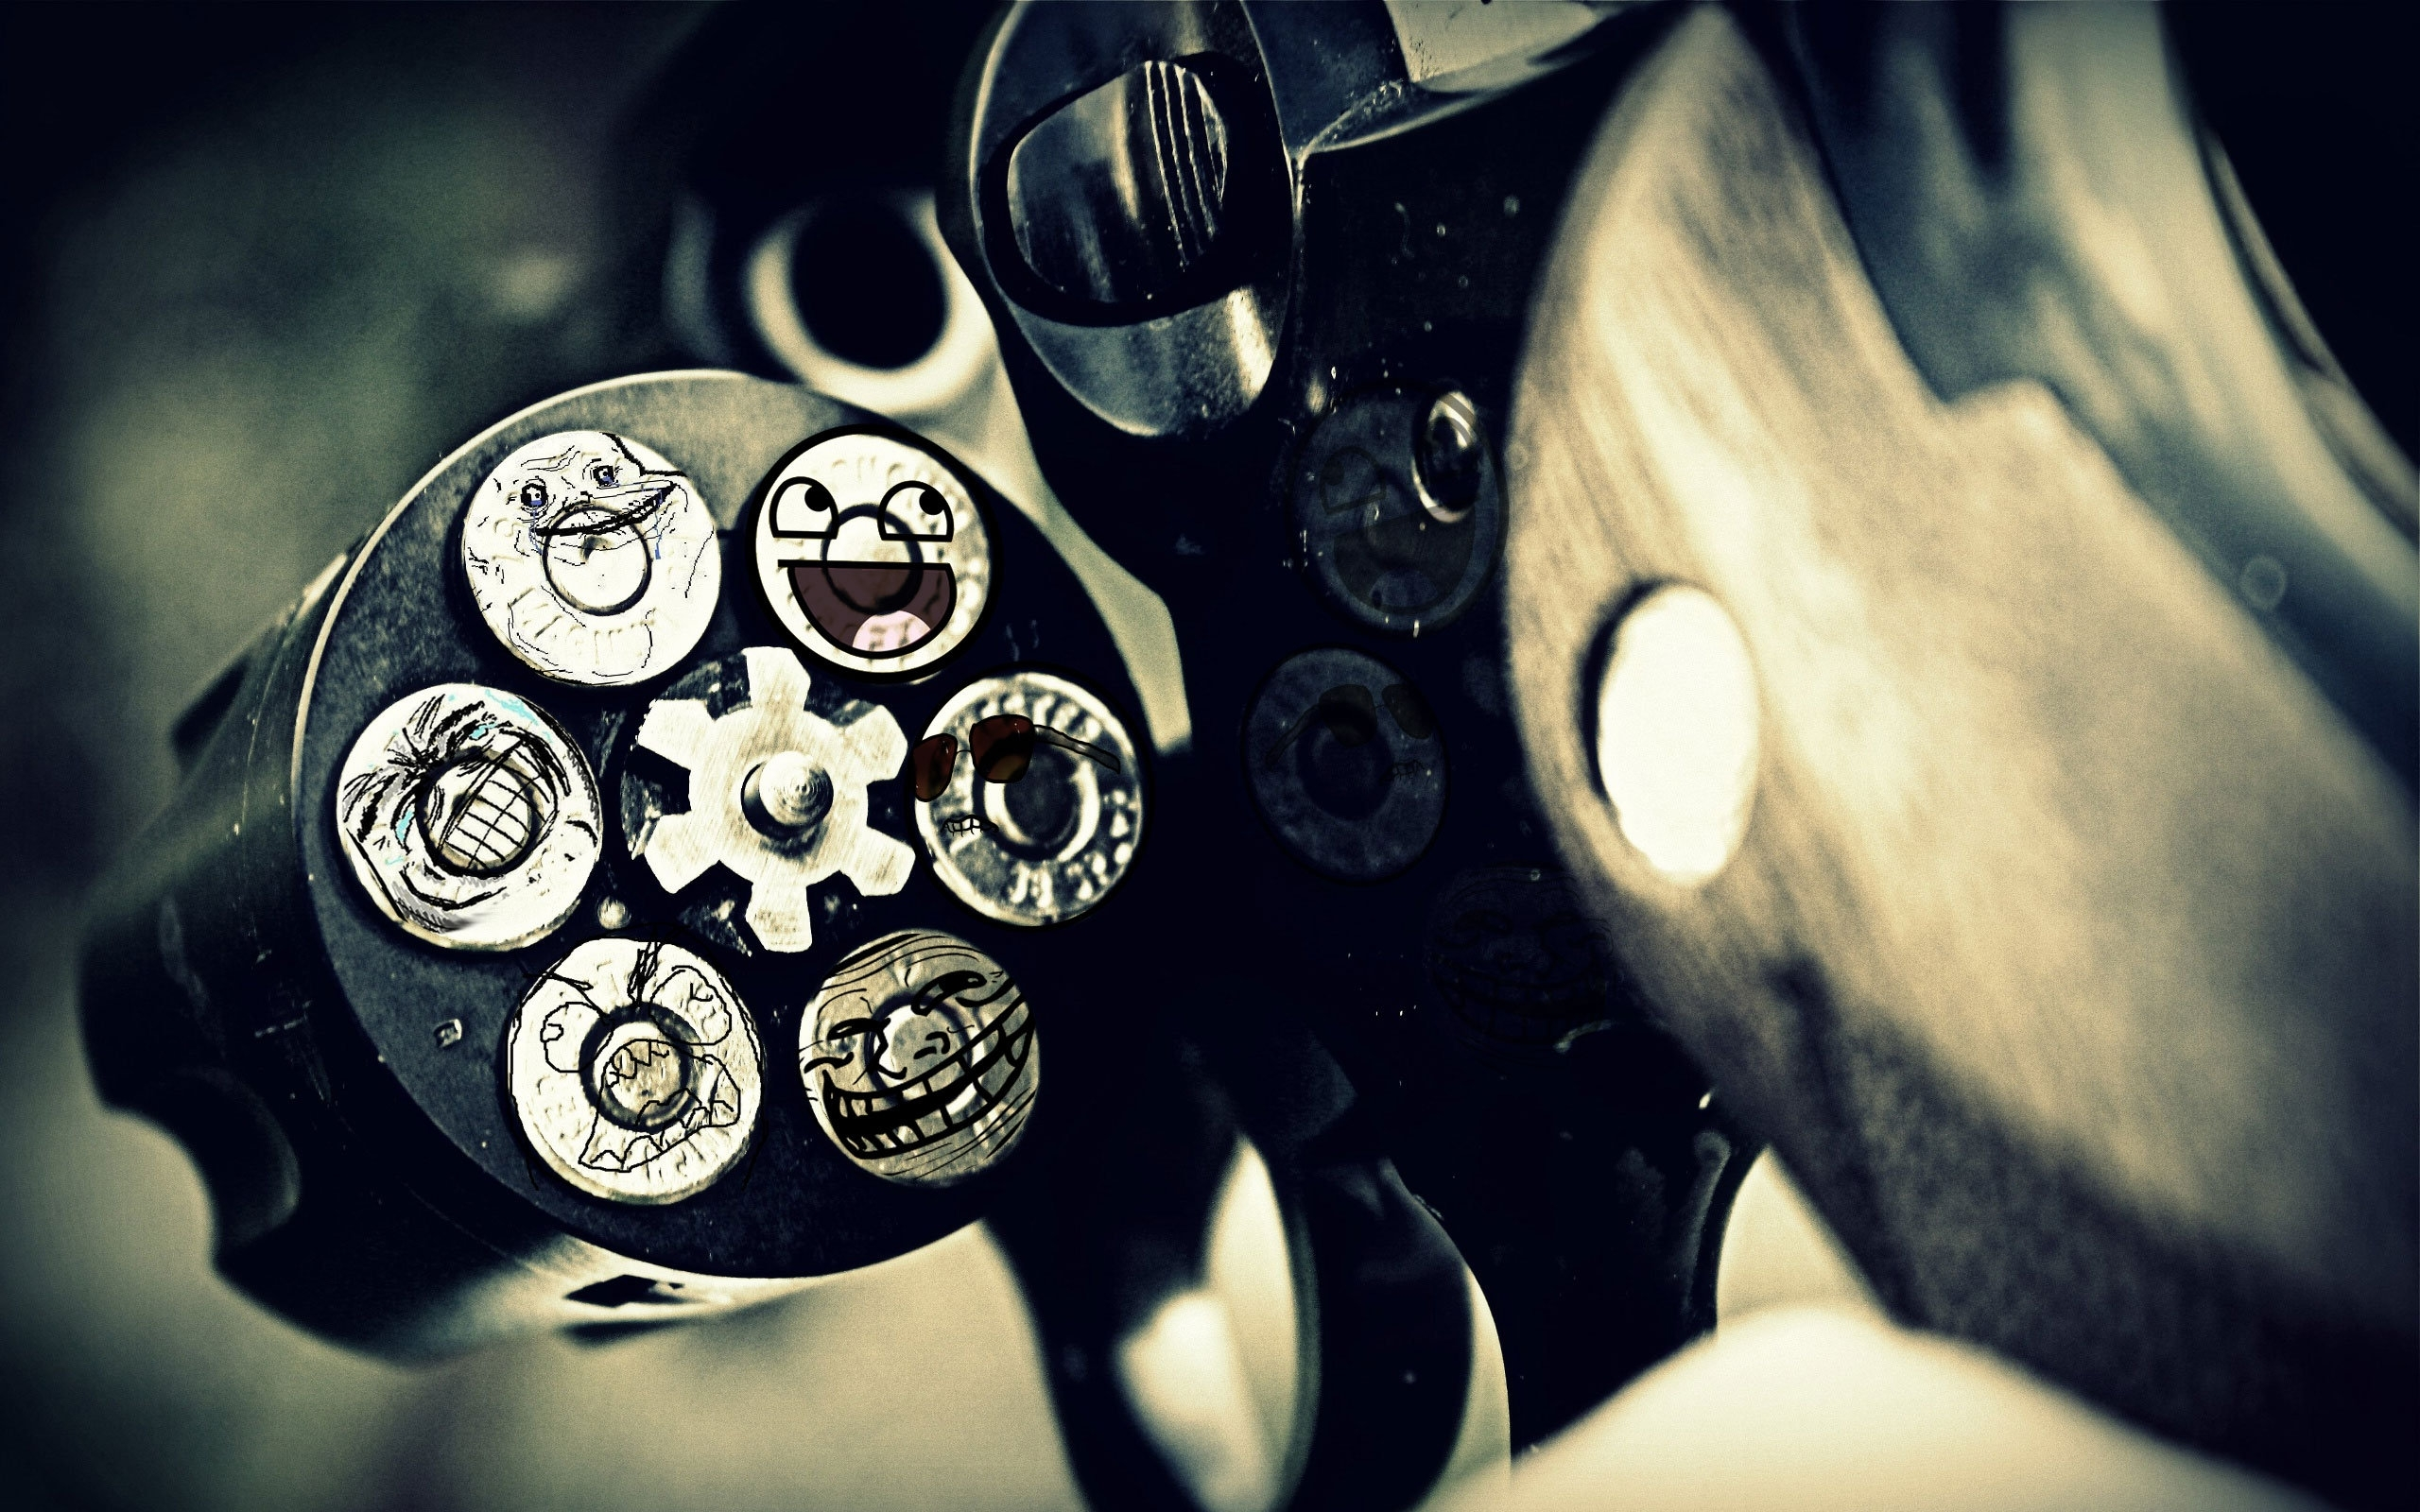 47862 download wallpaper Objects, Weapon screensavers and pictures for free